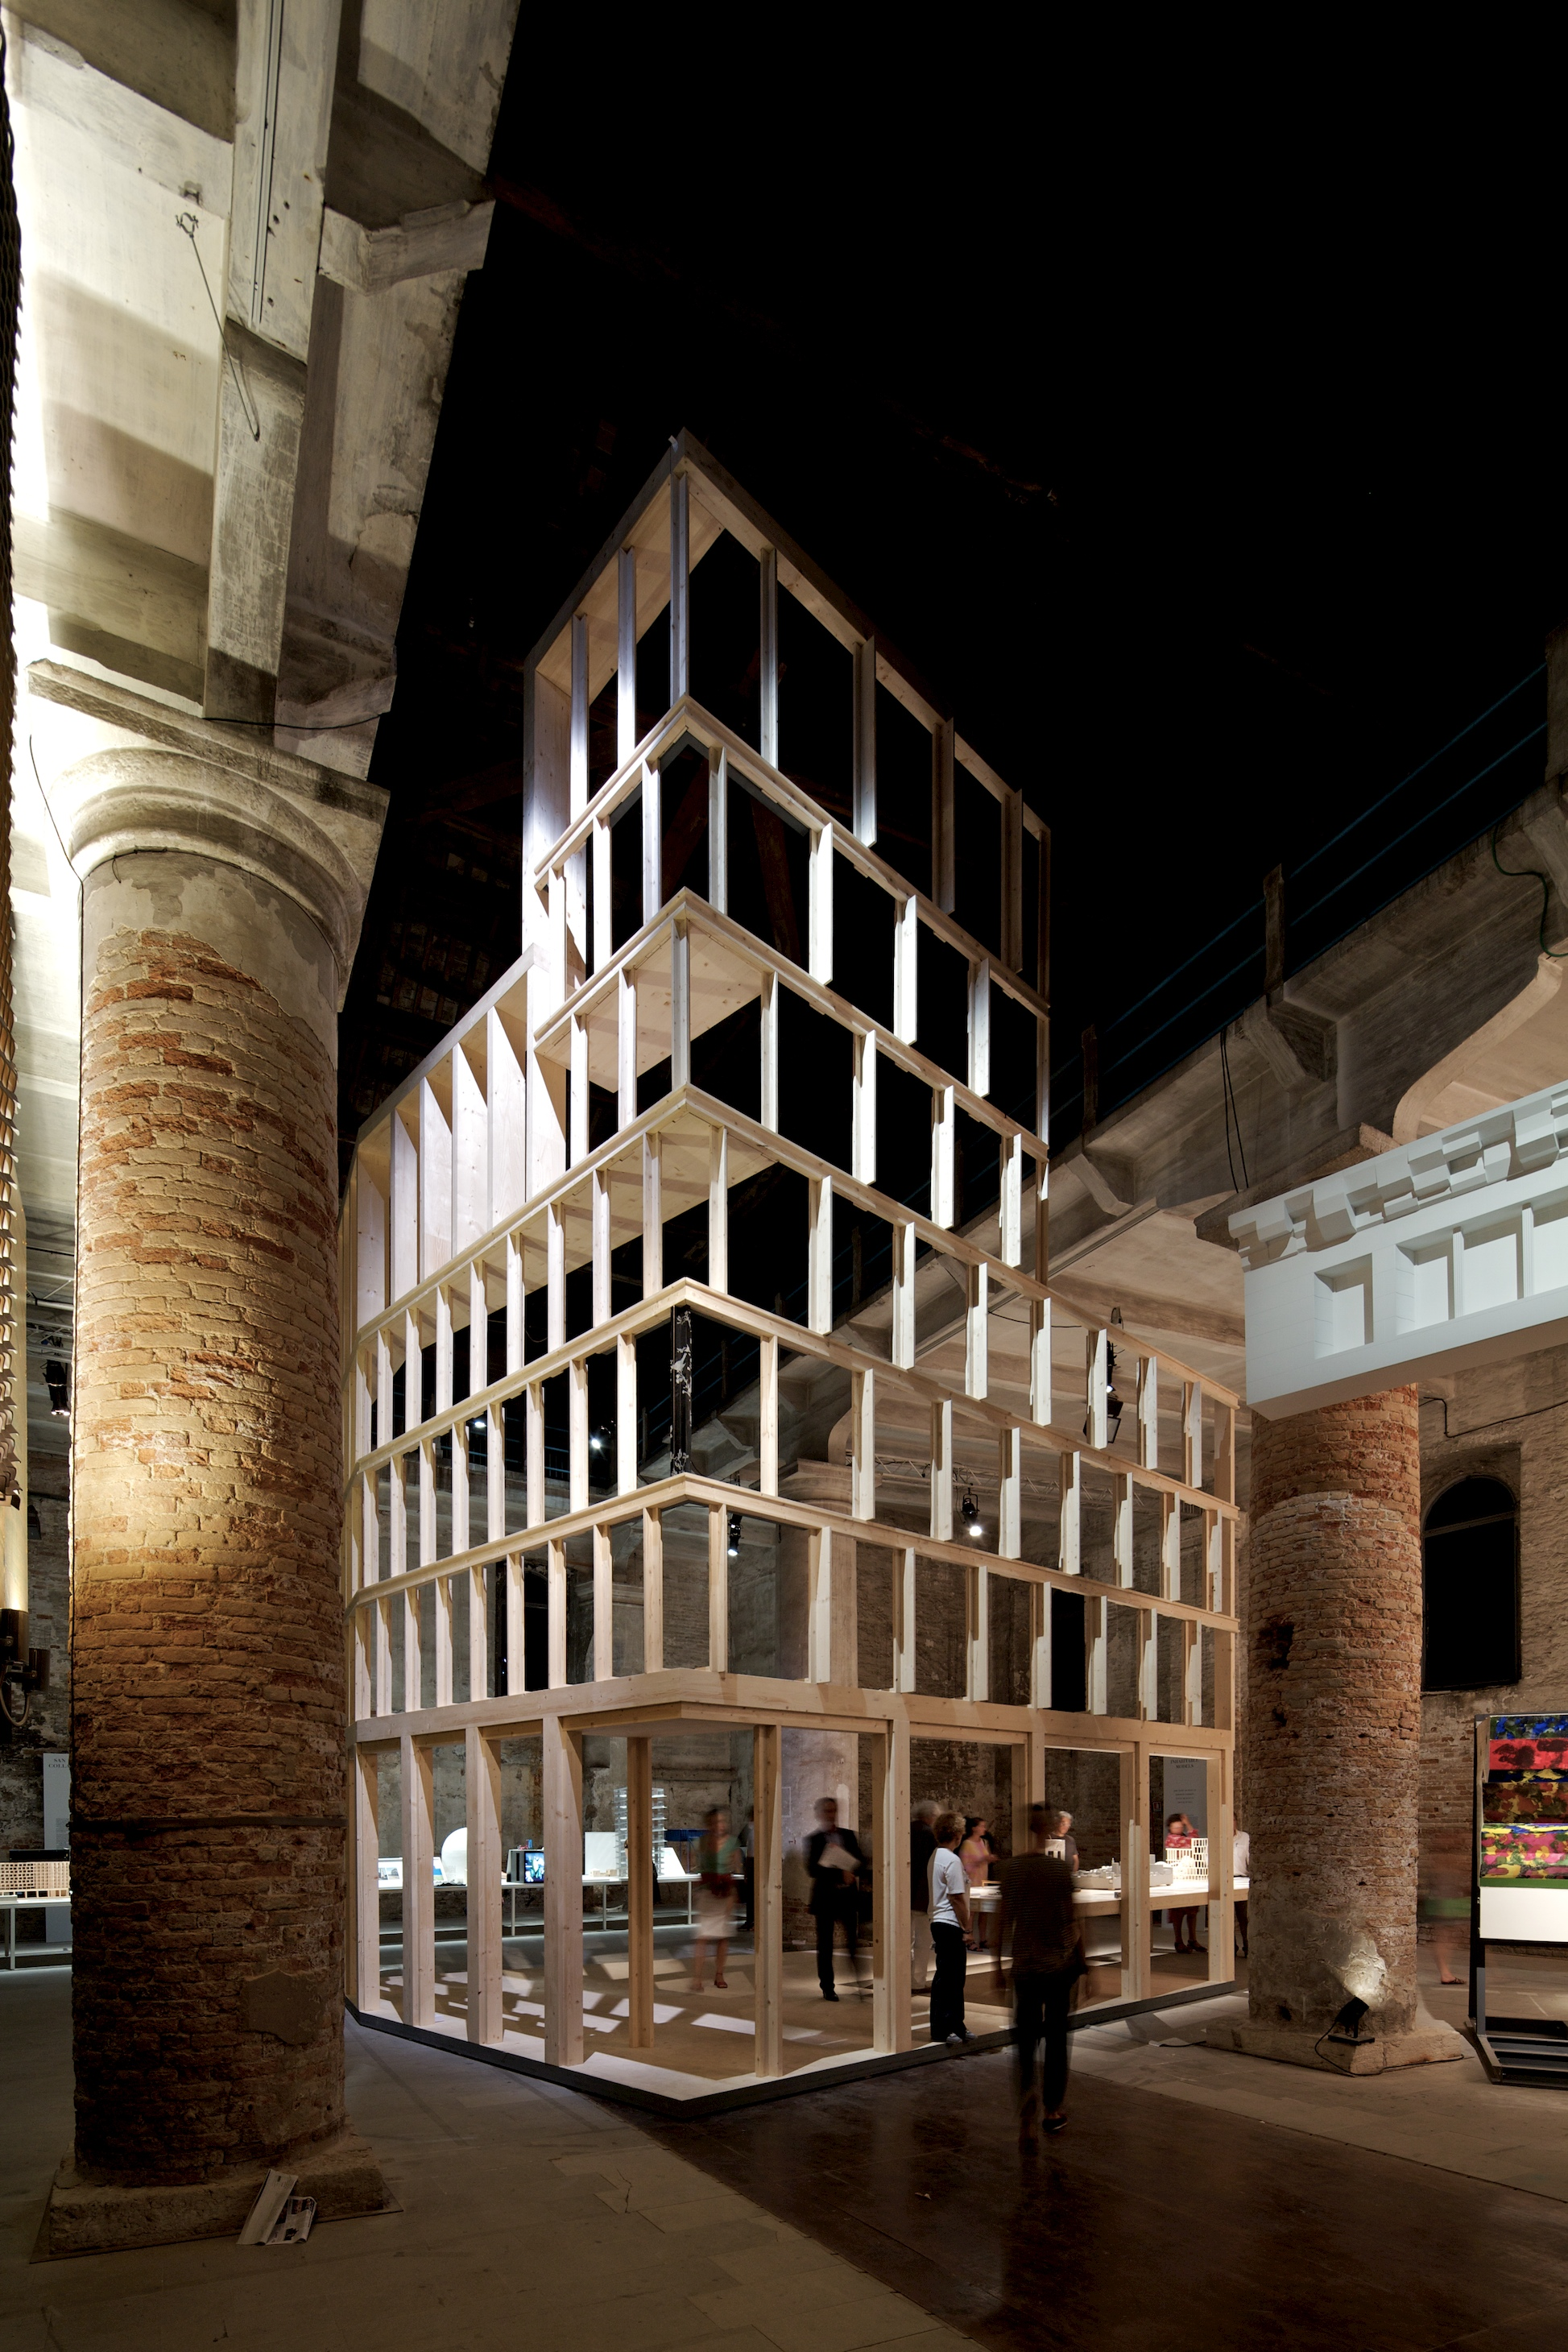 Bienal de Veneza 2012: Inhabitable Models / Eric Parry Architects, Haworth Tompkins, Lynch Architects, © Nico Saieh